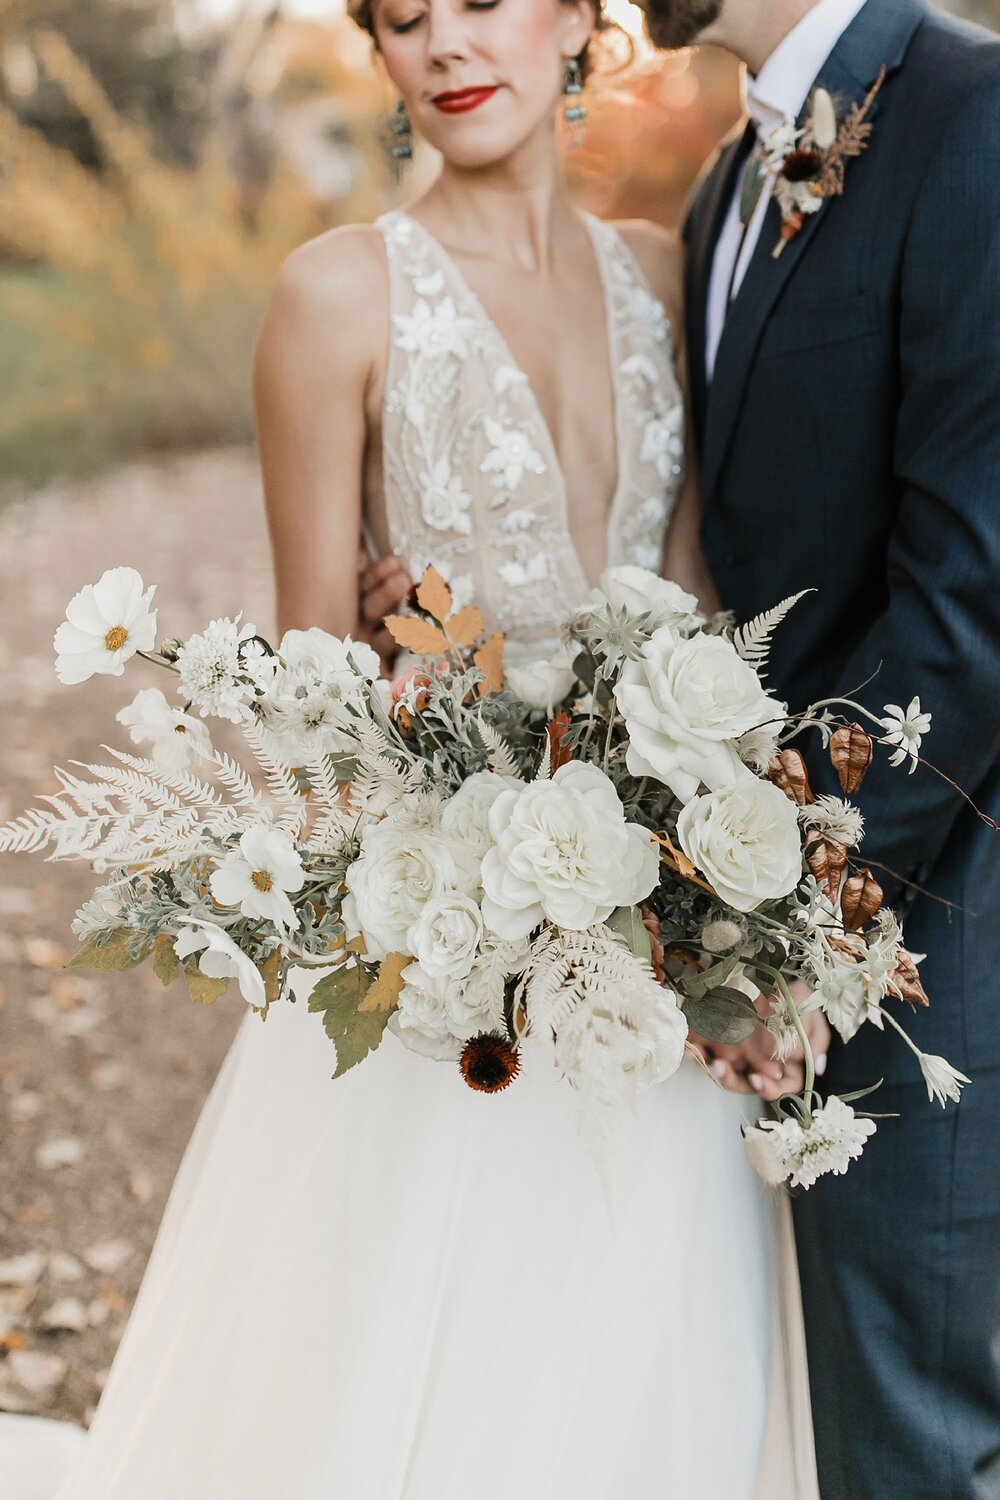 Alicia+lucia+photography+-+albuquerque+wedding+photographer+-+santa+fe+wedding+photography+-+new+mexico+wedding+photographer+-+new+mexico+wedding+-+fall+wedding+-+fall+wedding+florals+-+wedding+florals_0001.jpg